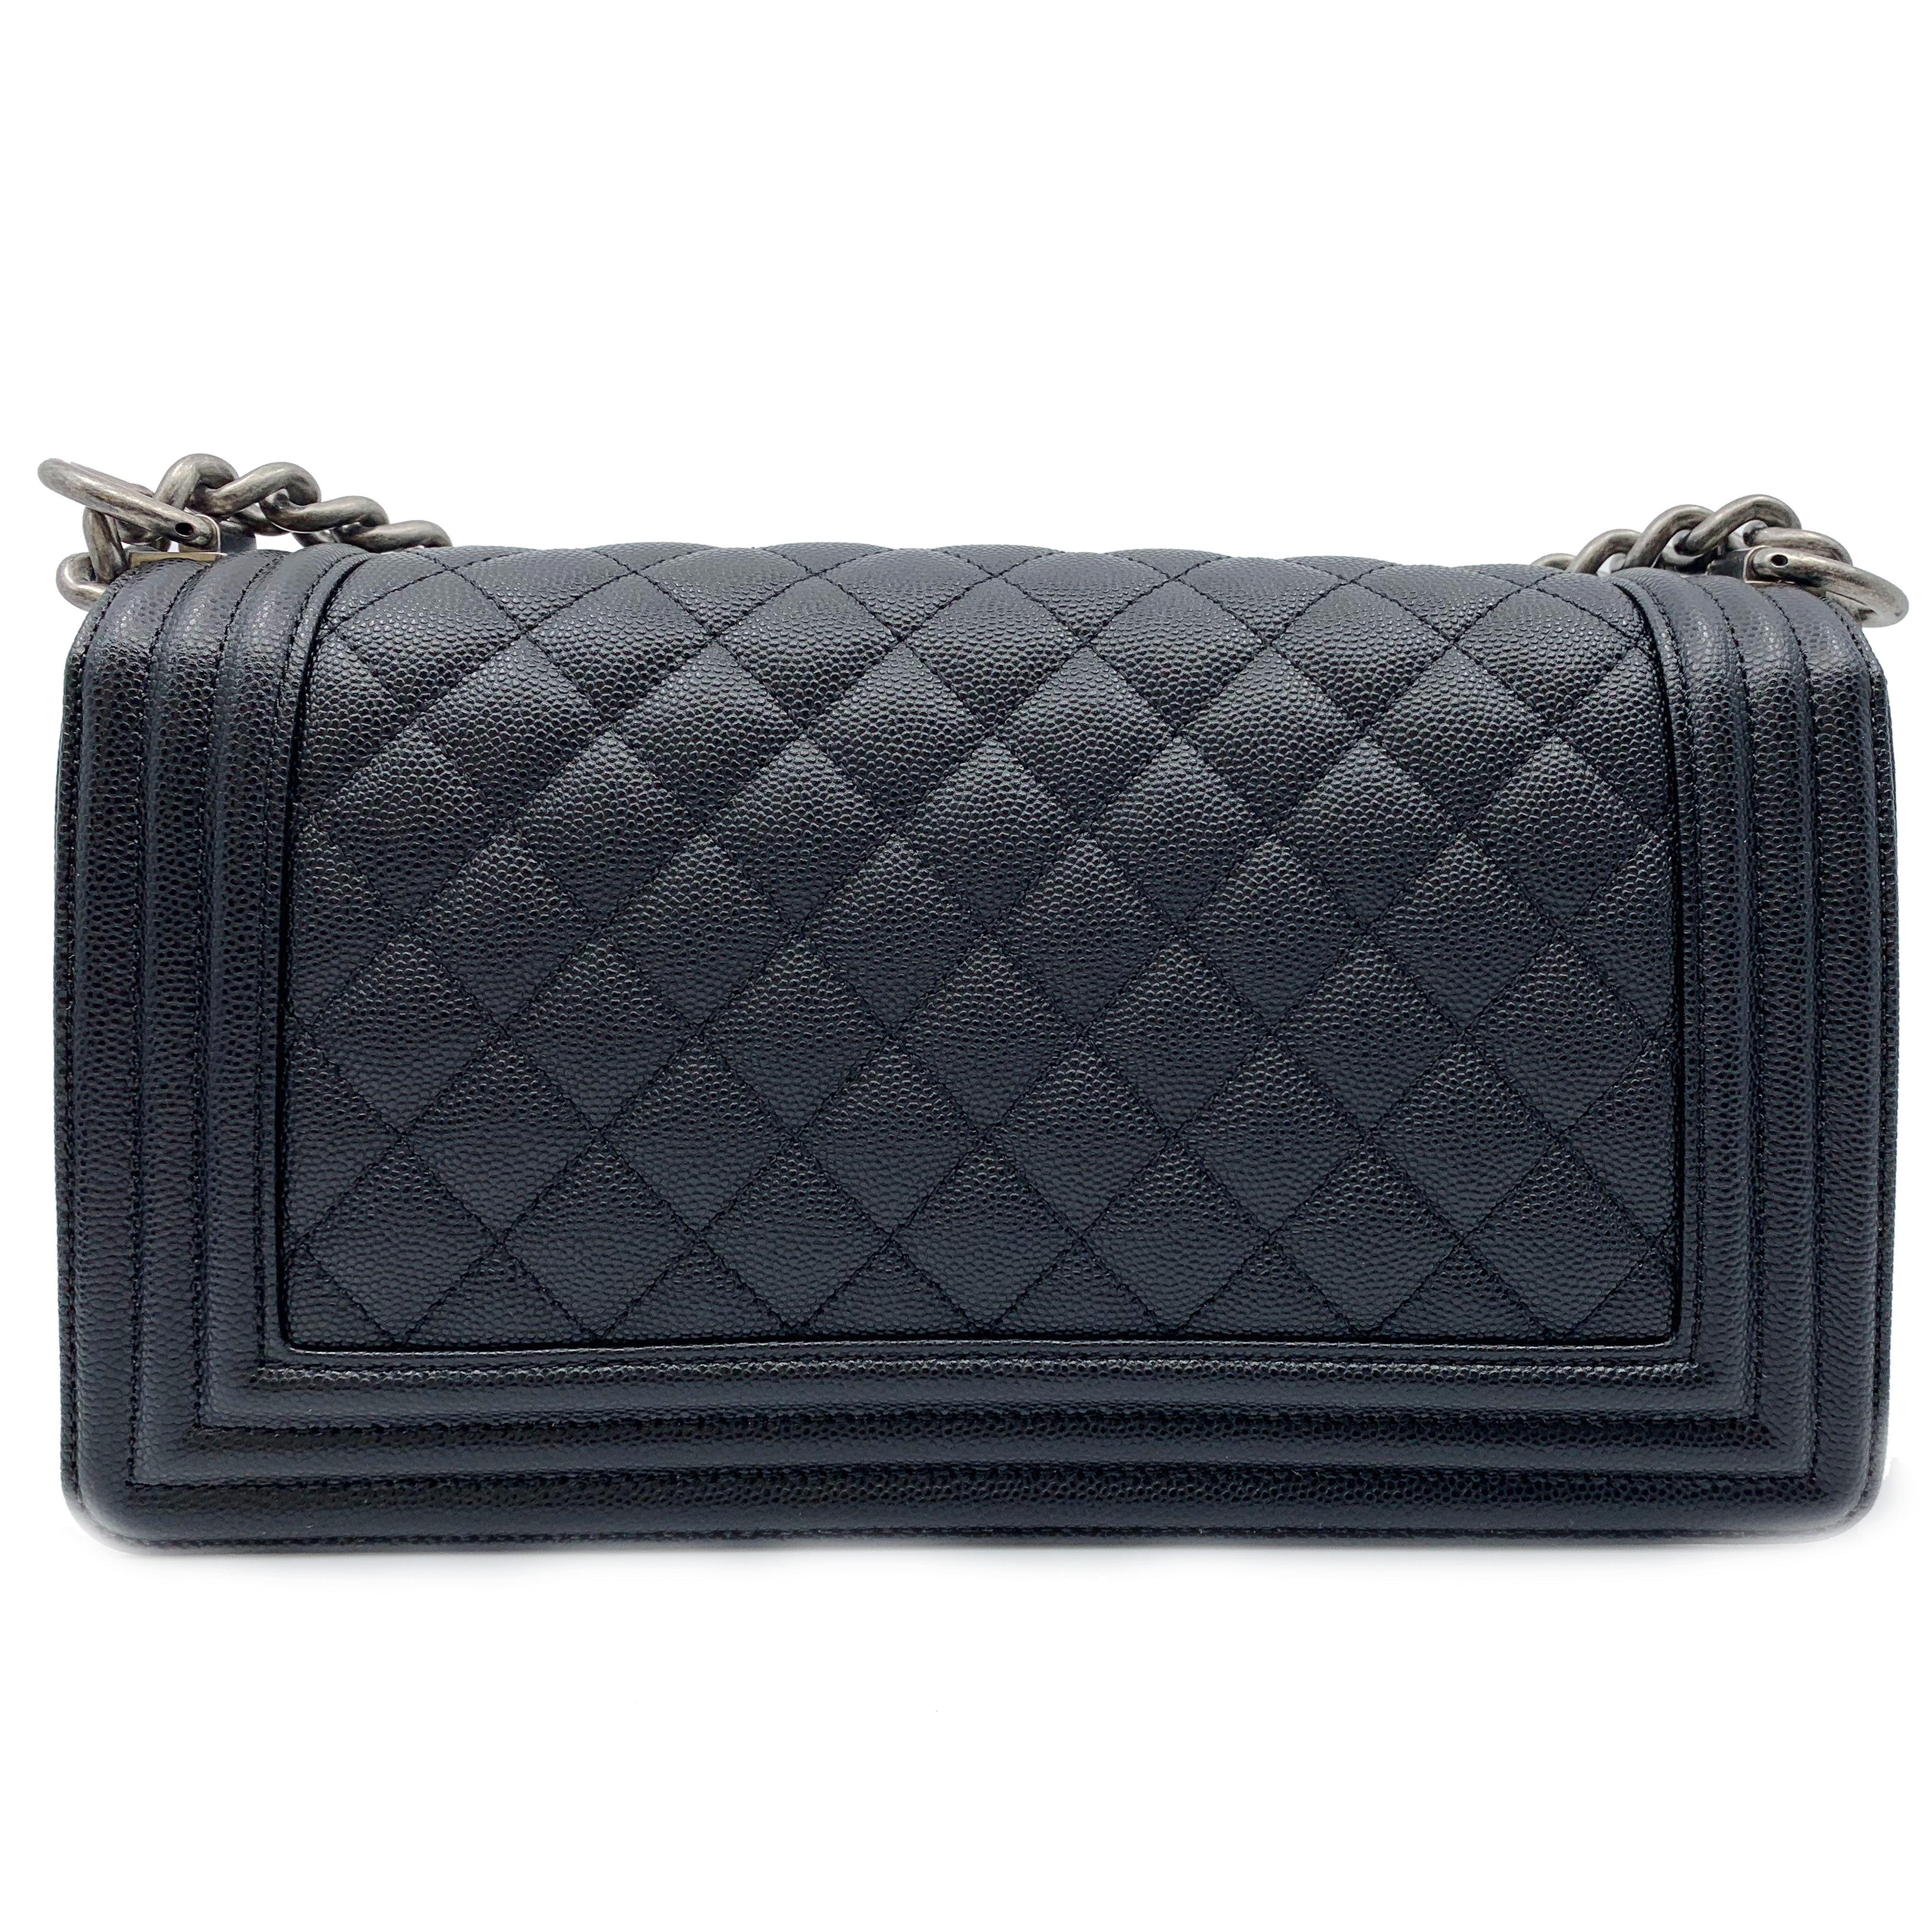 6218c640f01929 Chanel Boy Ruthenium Finish Medium Black Quilted Leather Bag A67086 Y83338  94305 For Sale at 1stdibs